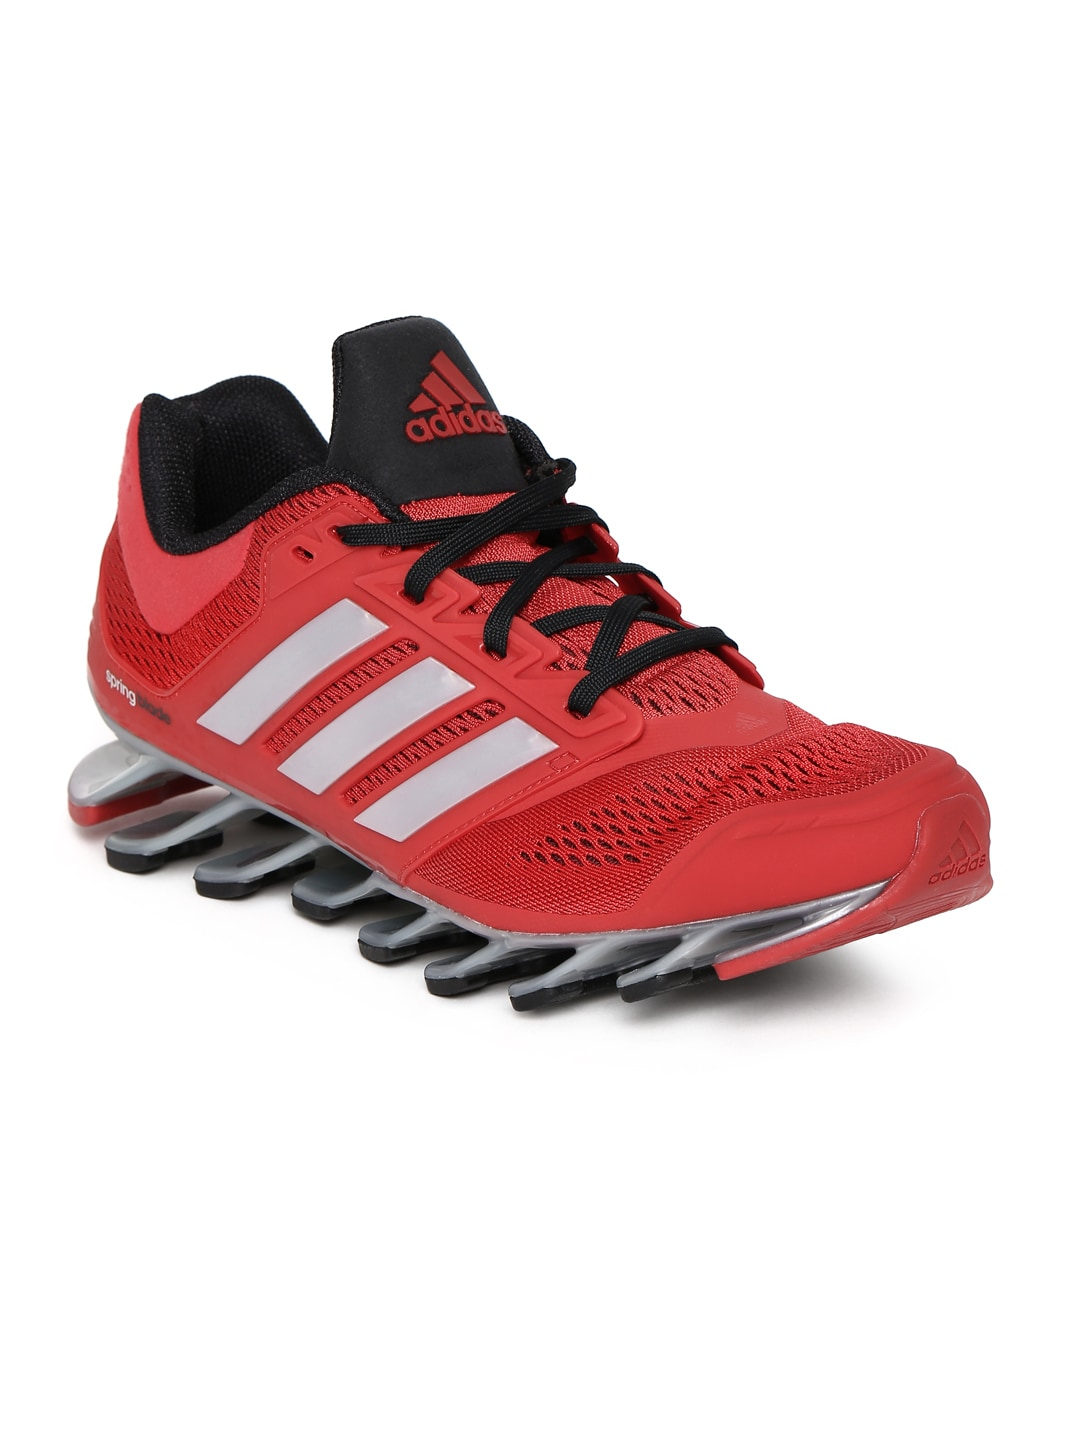 Adidas Adidas Men Red Springblade Drive M Running Shoes (Multicolor)